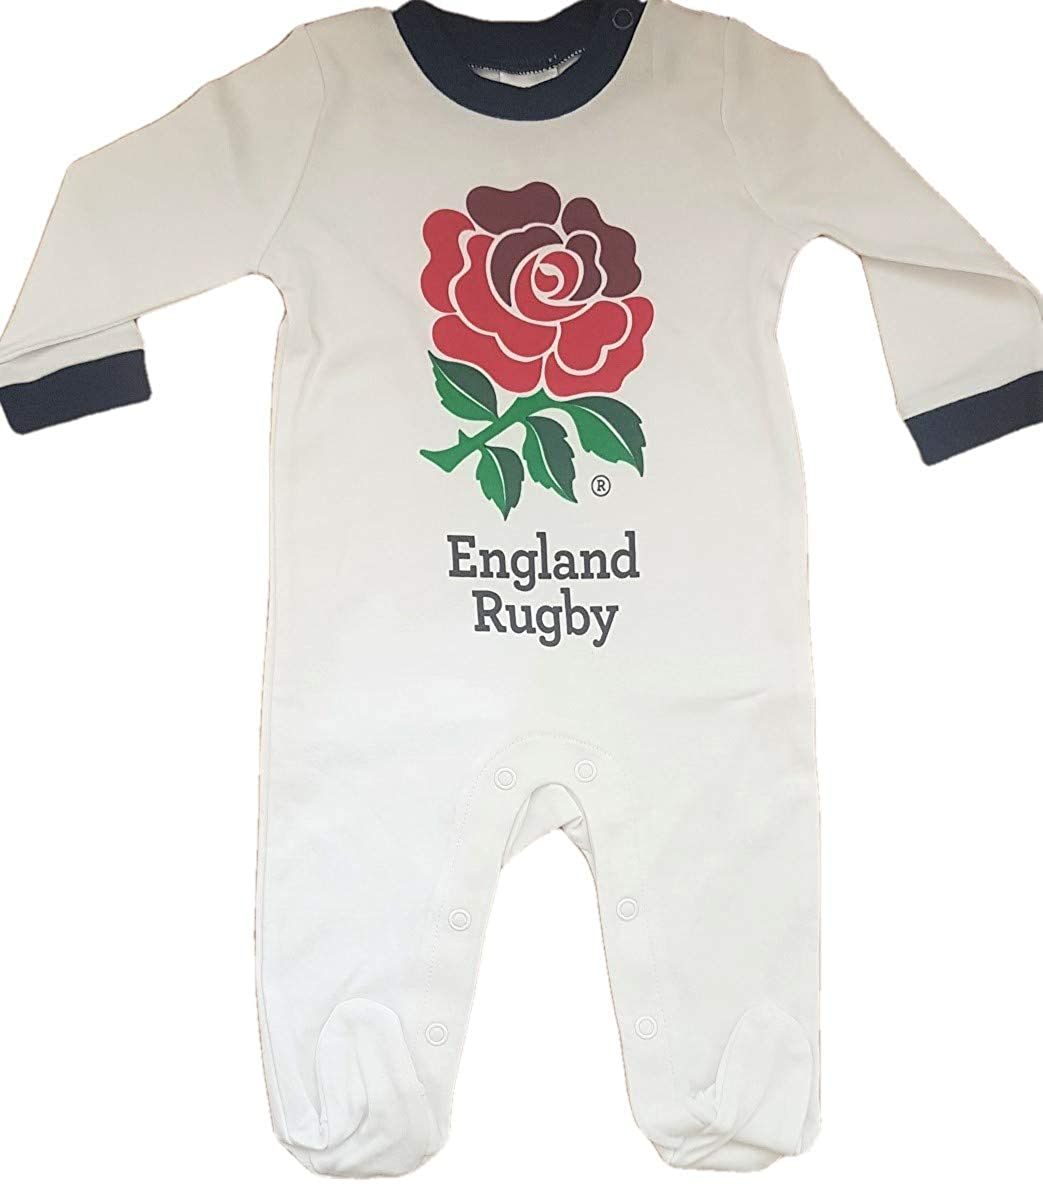 England Rugby Union 2019 Rugby World Cup Infant 4 Piece Rugby Gift Set Baby Grow